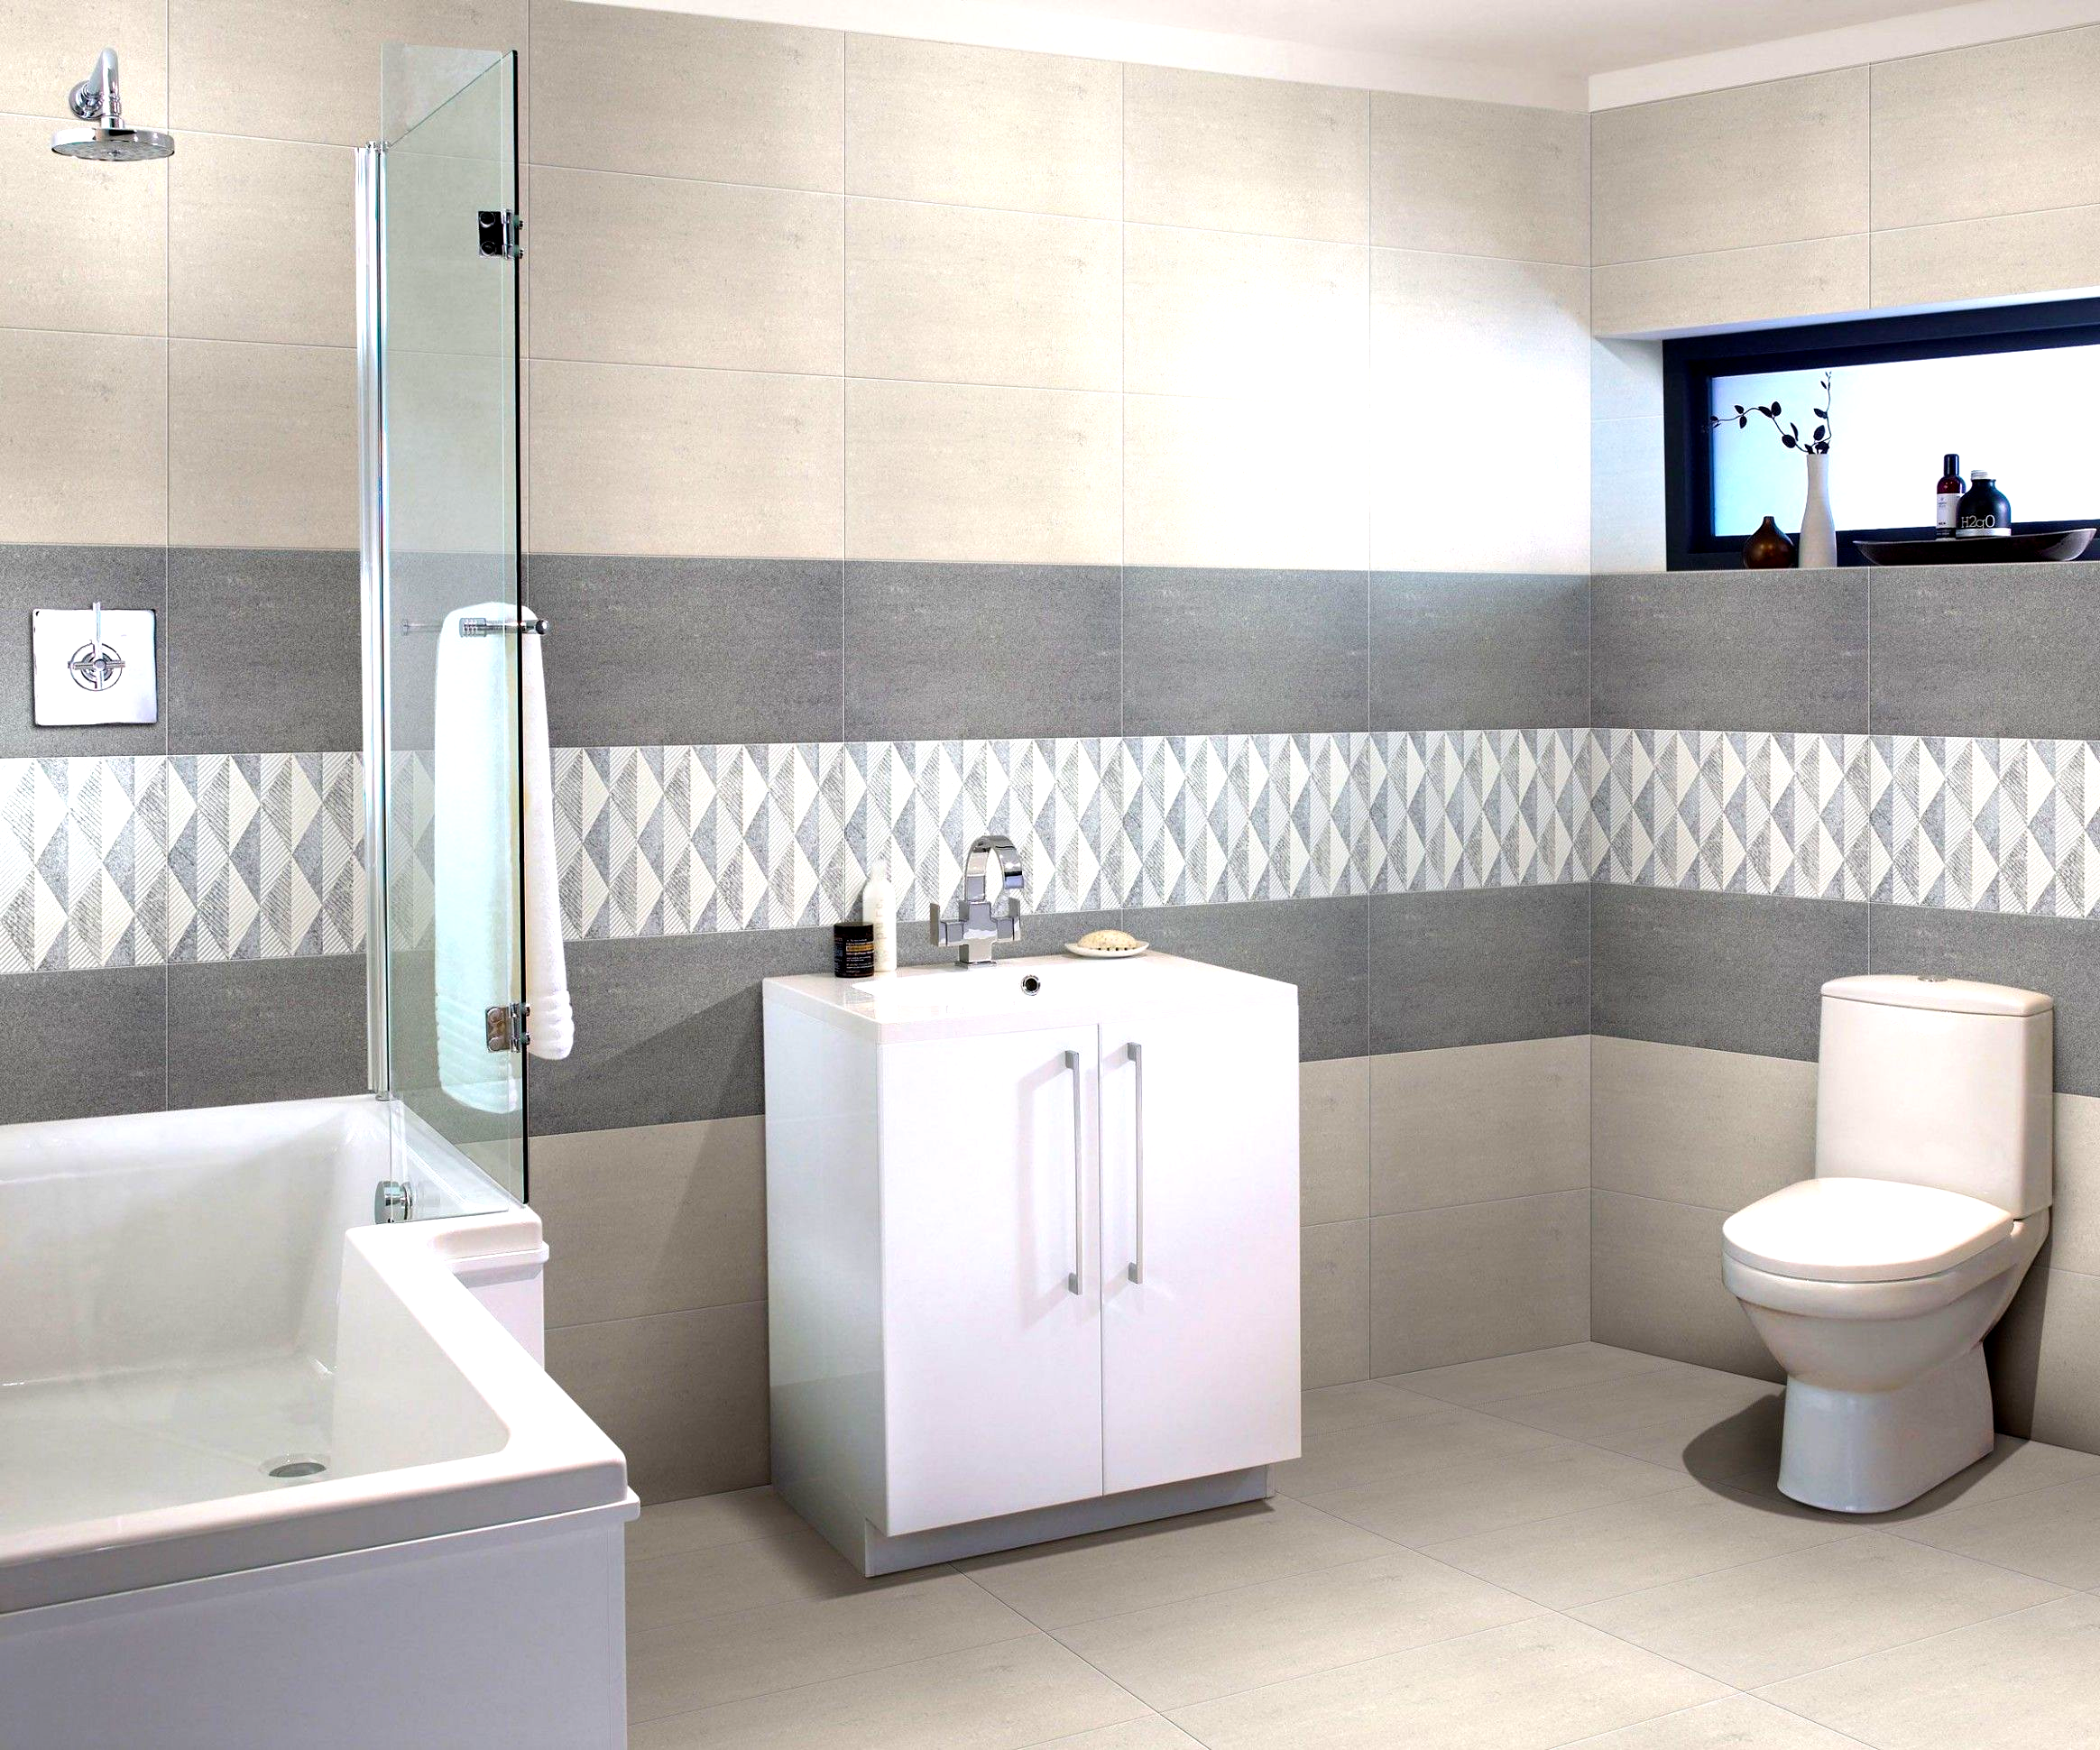 A Comprehensive Overview On Home Decoration In 2020 Bathroom Wall Tile Design Wall Tiles Design Bathroom Wall Tile